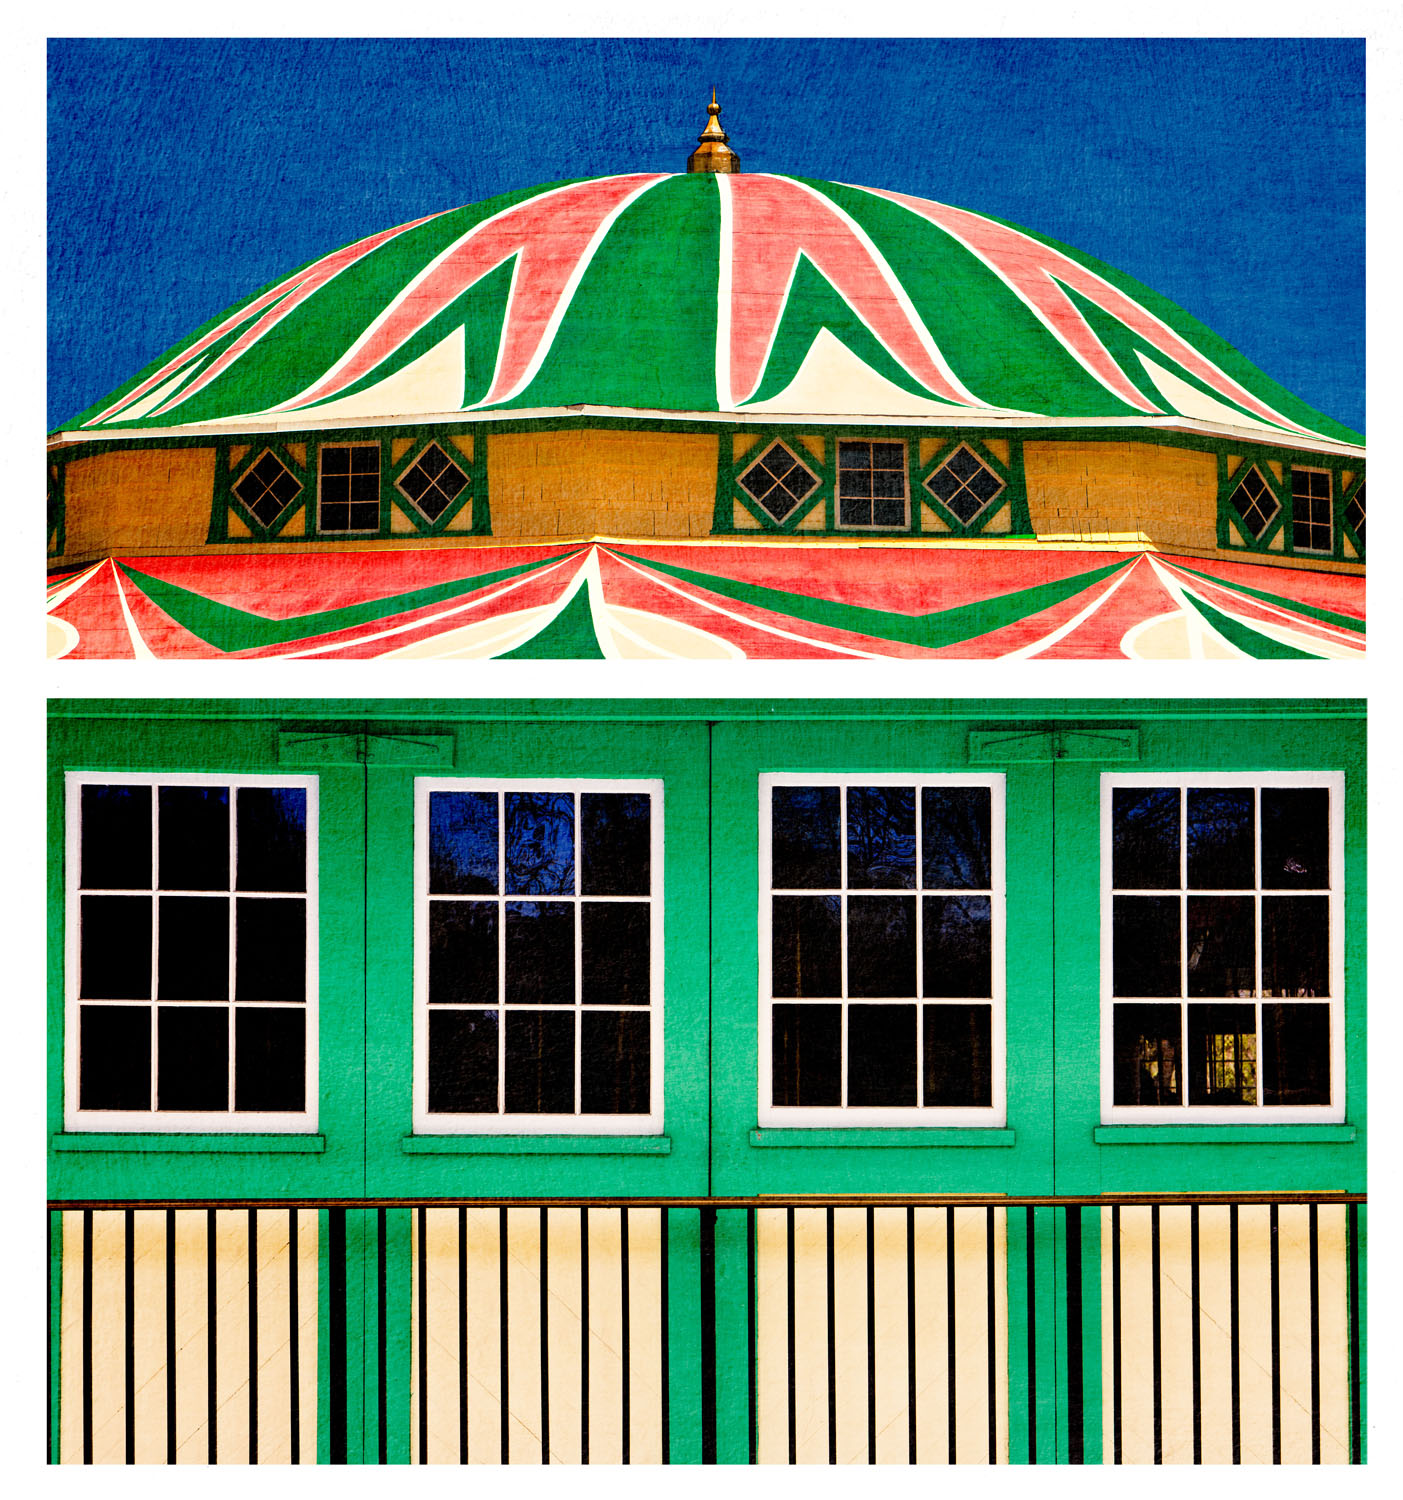 05 may 09 2011_watermelon carousel with doors_Texture.jpg